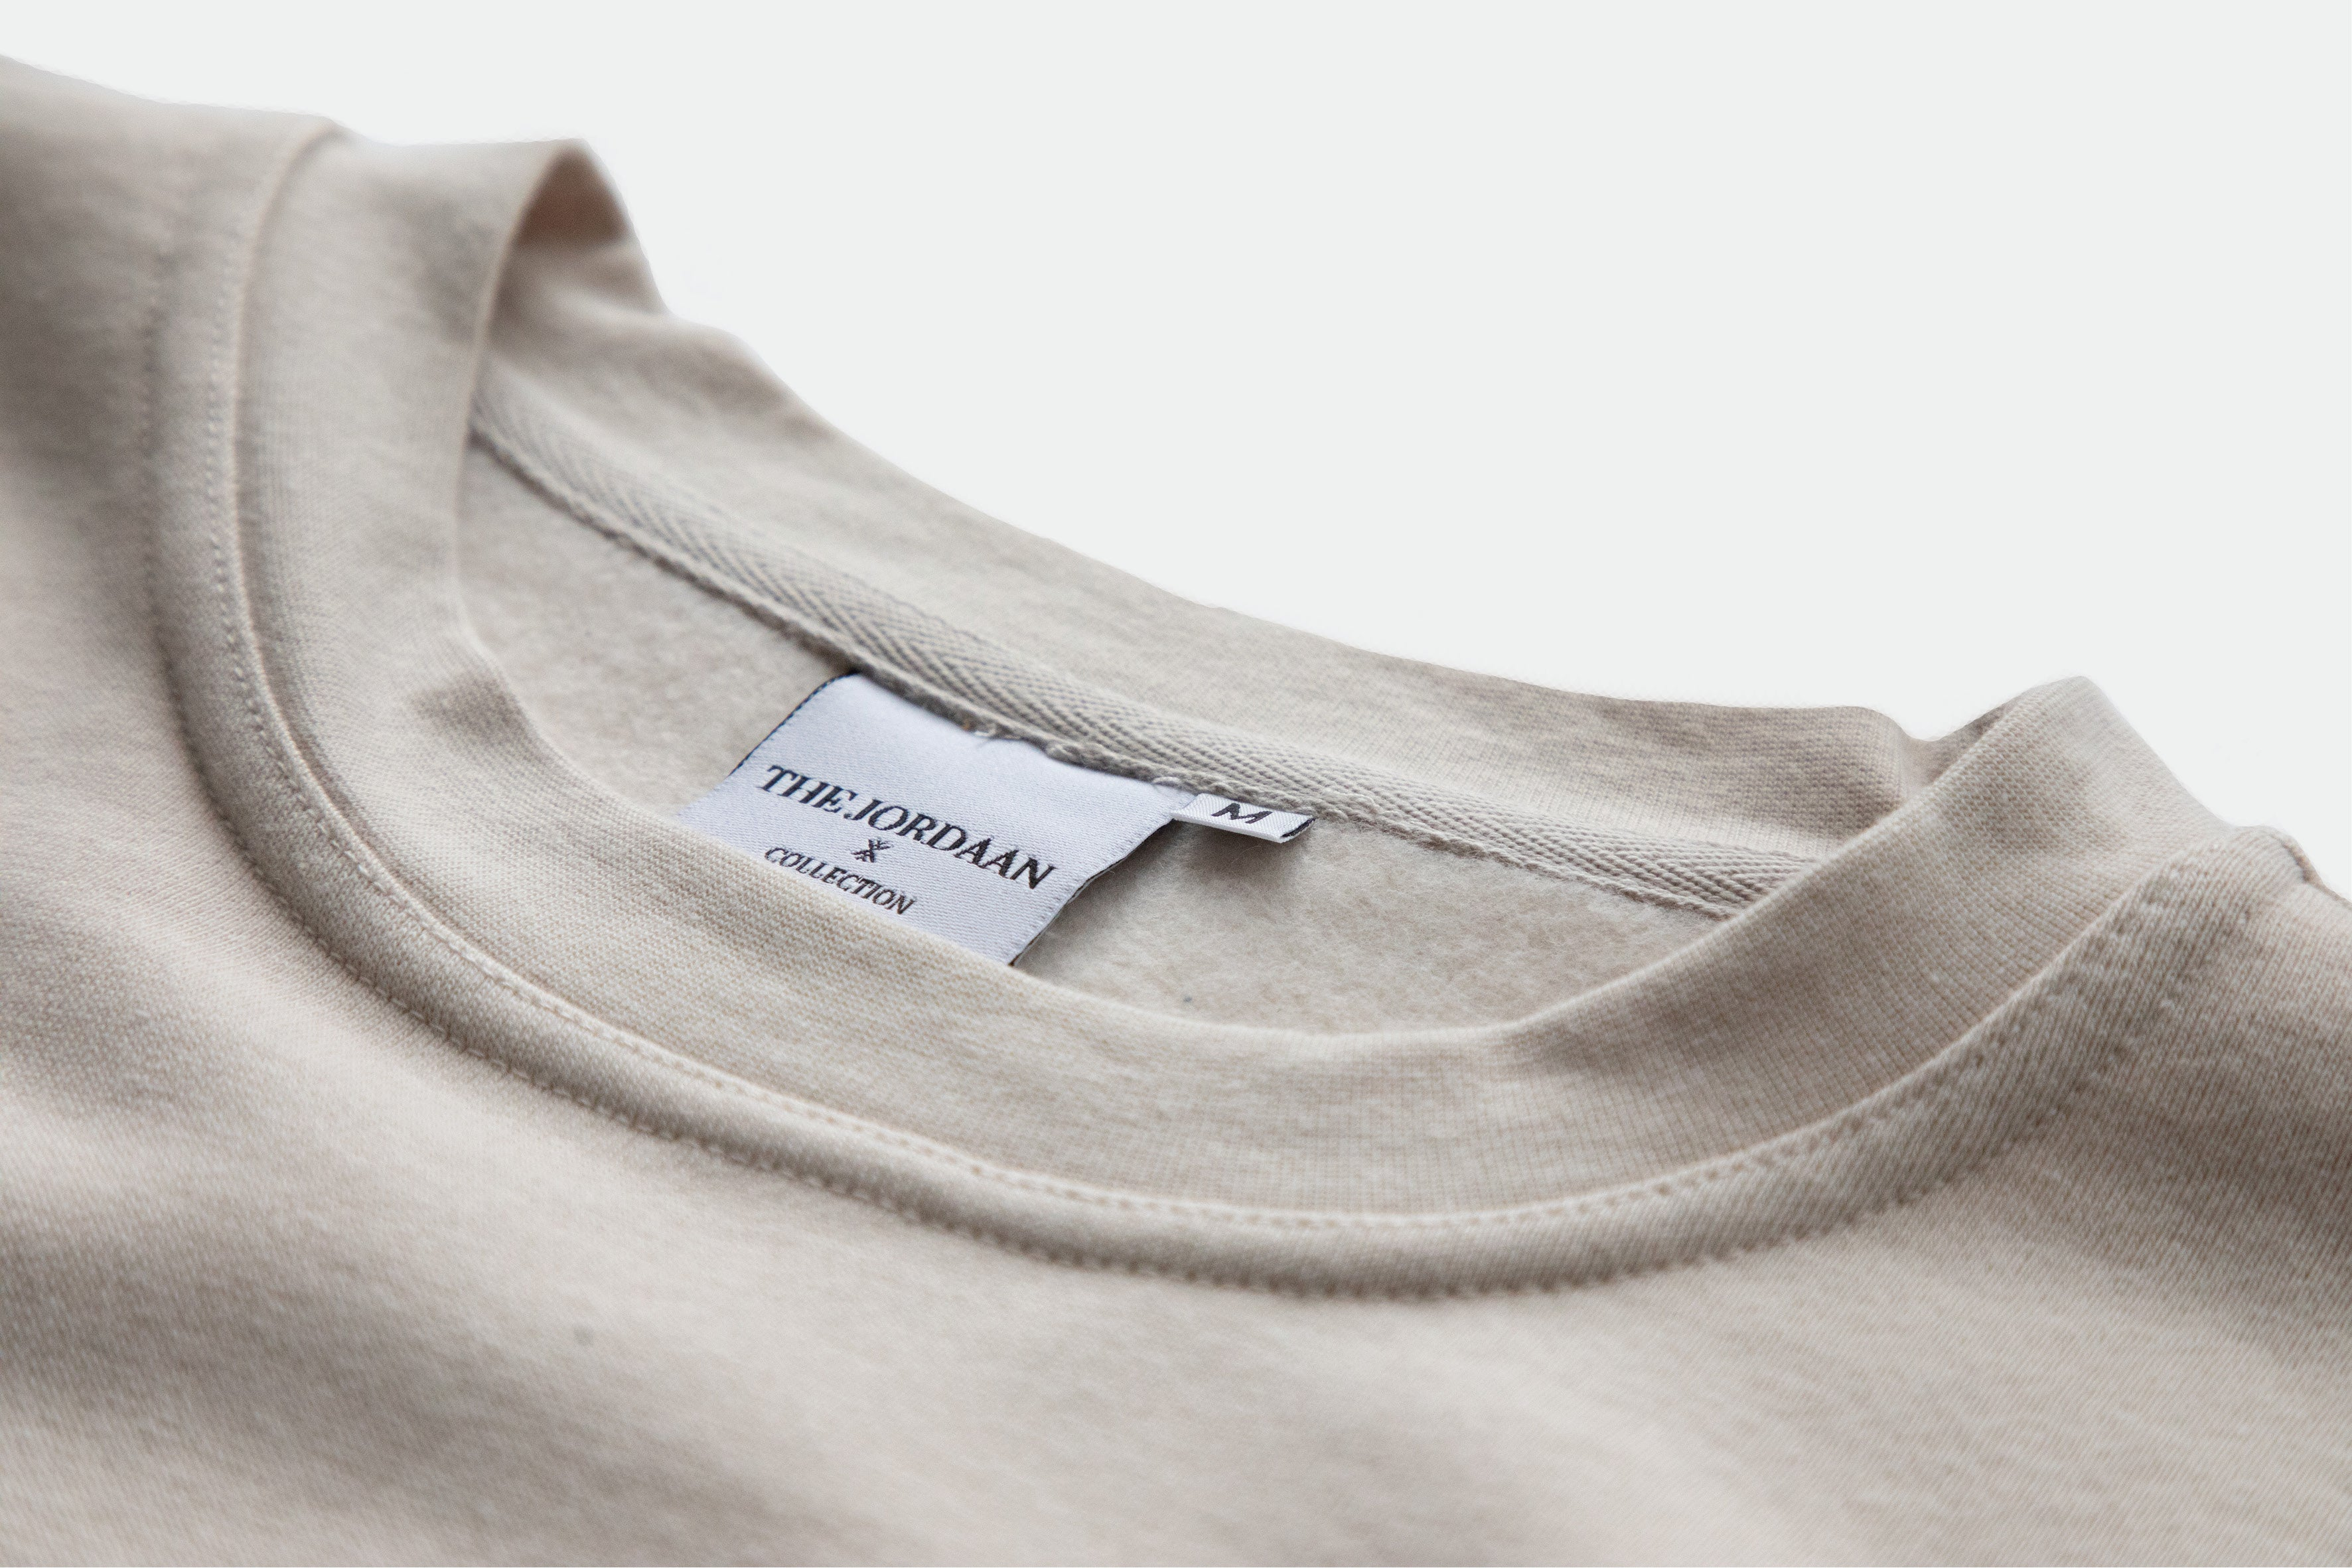 Authentic sweatshirt with unisex fit. Made from the softest cotton blend with the original THE JORDAAN logo, wear this item casual with denim or as a real fashion piece with one of your favorite items! Wandering along the Jordaan district or Central Park, this sweatshirt keeps you comphy at any time!